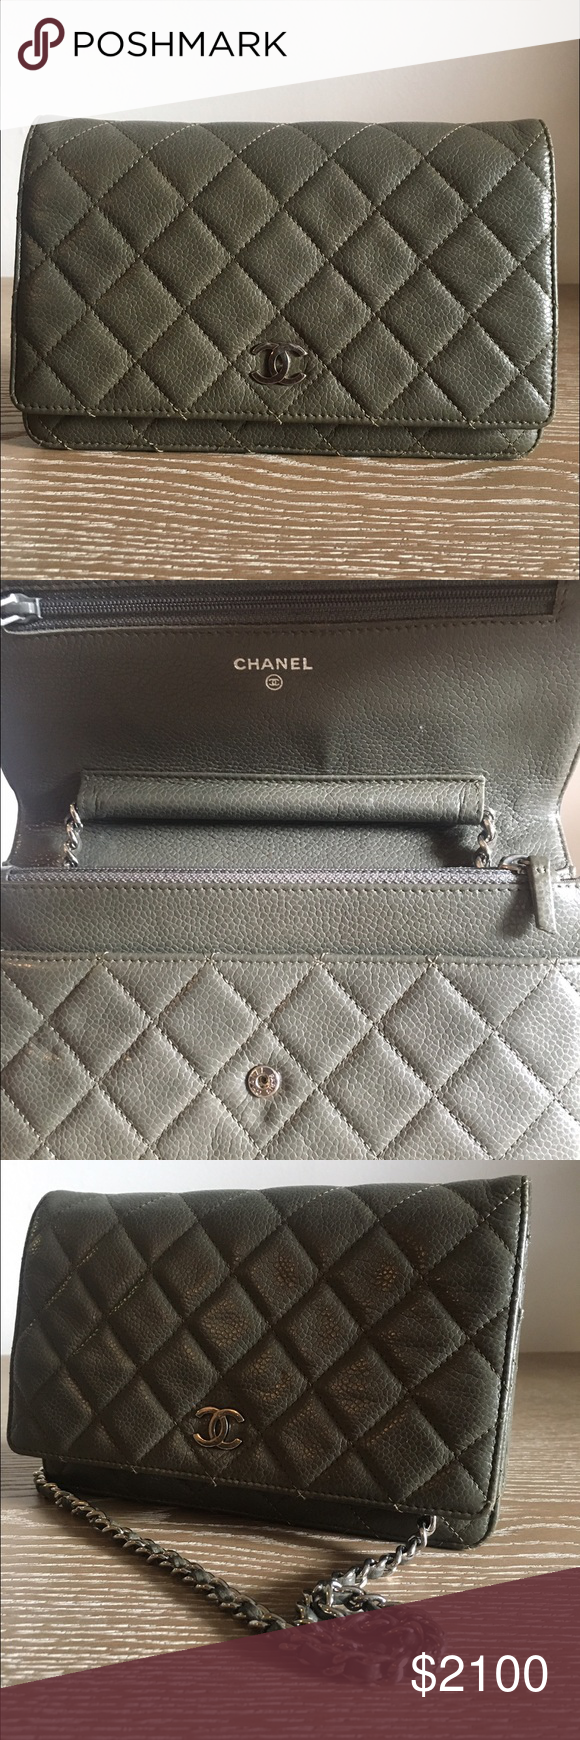 329a8491b9a0 Authentic Quilted Chanel Wallet on Chain Limited Edition Olive Green Chanel  Classic Quilted Wallet On Chain. Comes with authenticity card and silver ...